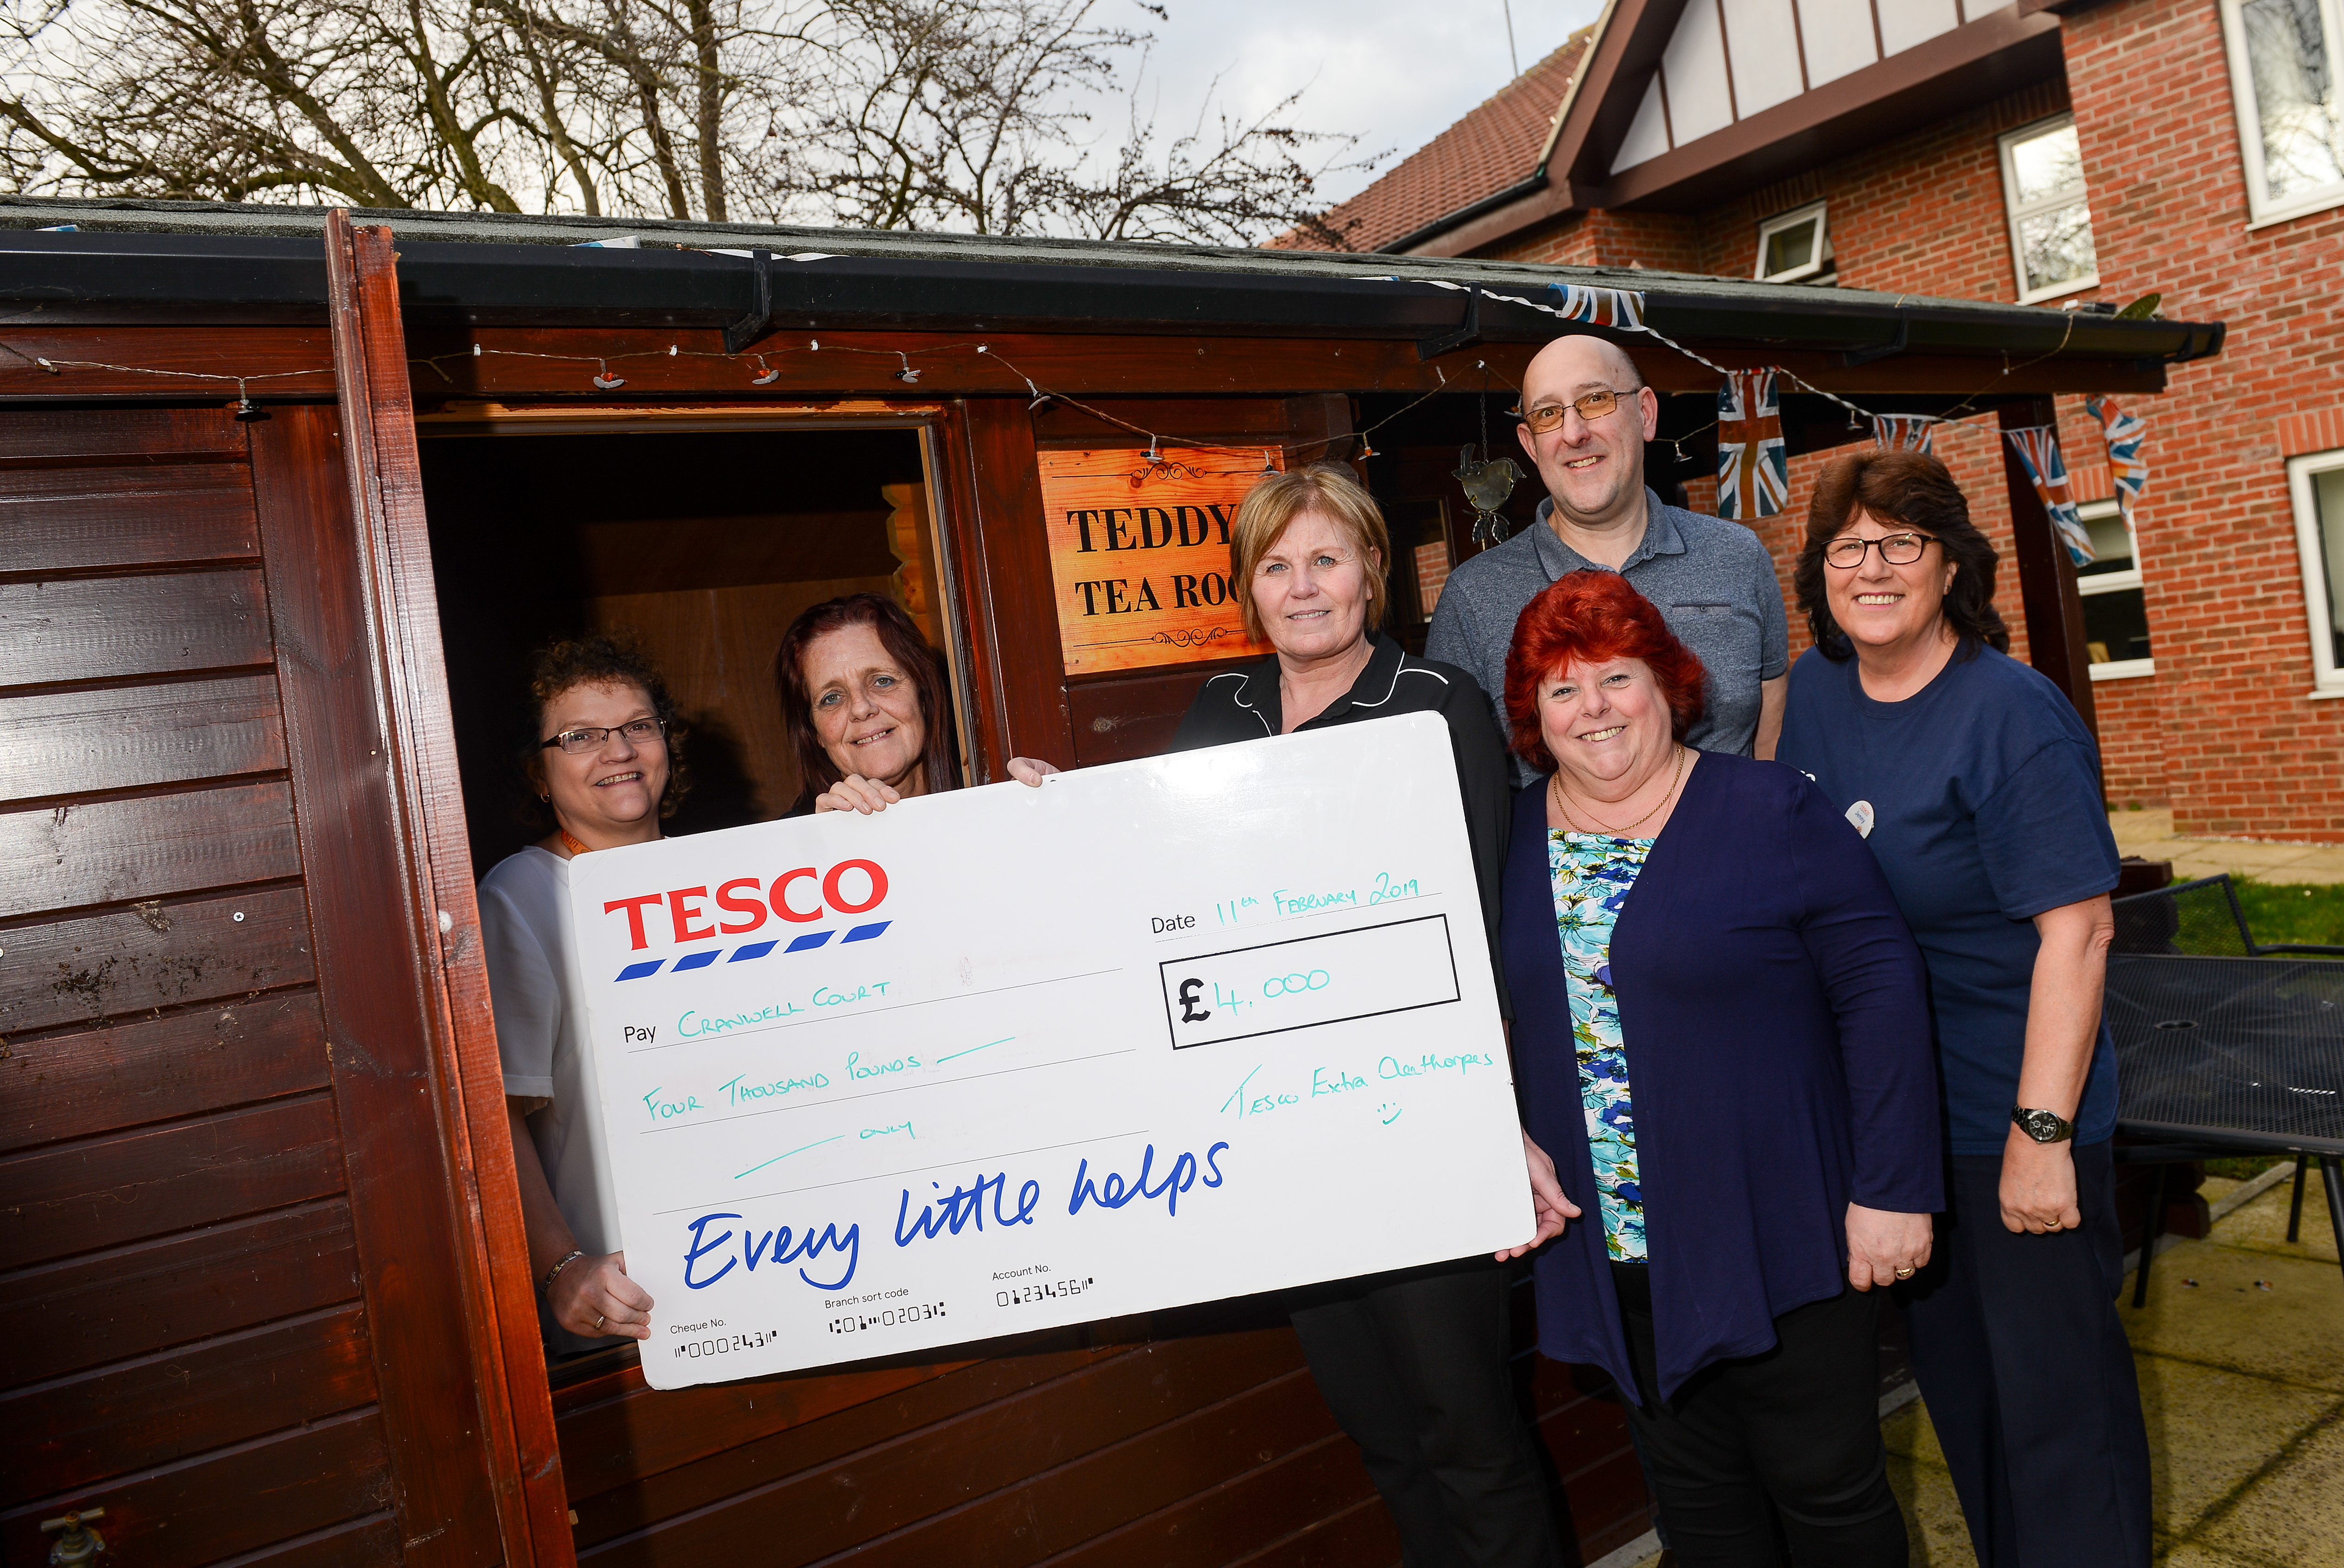 Cranwell Court staff receive their donation from Tesco